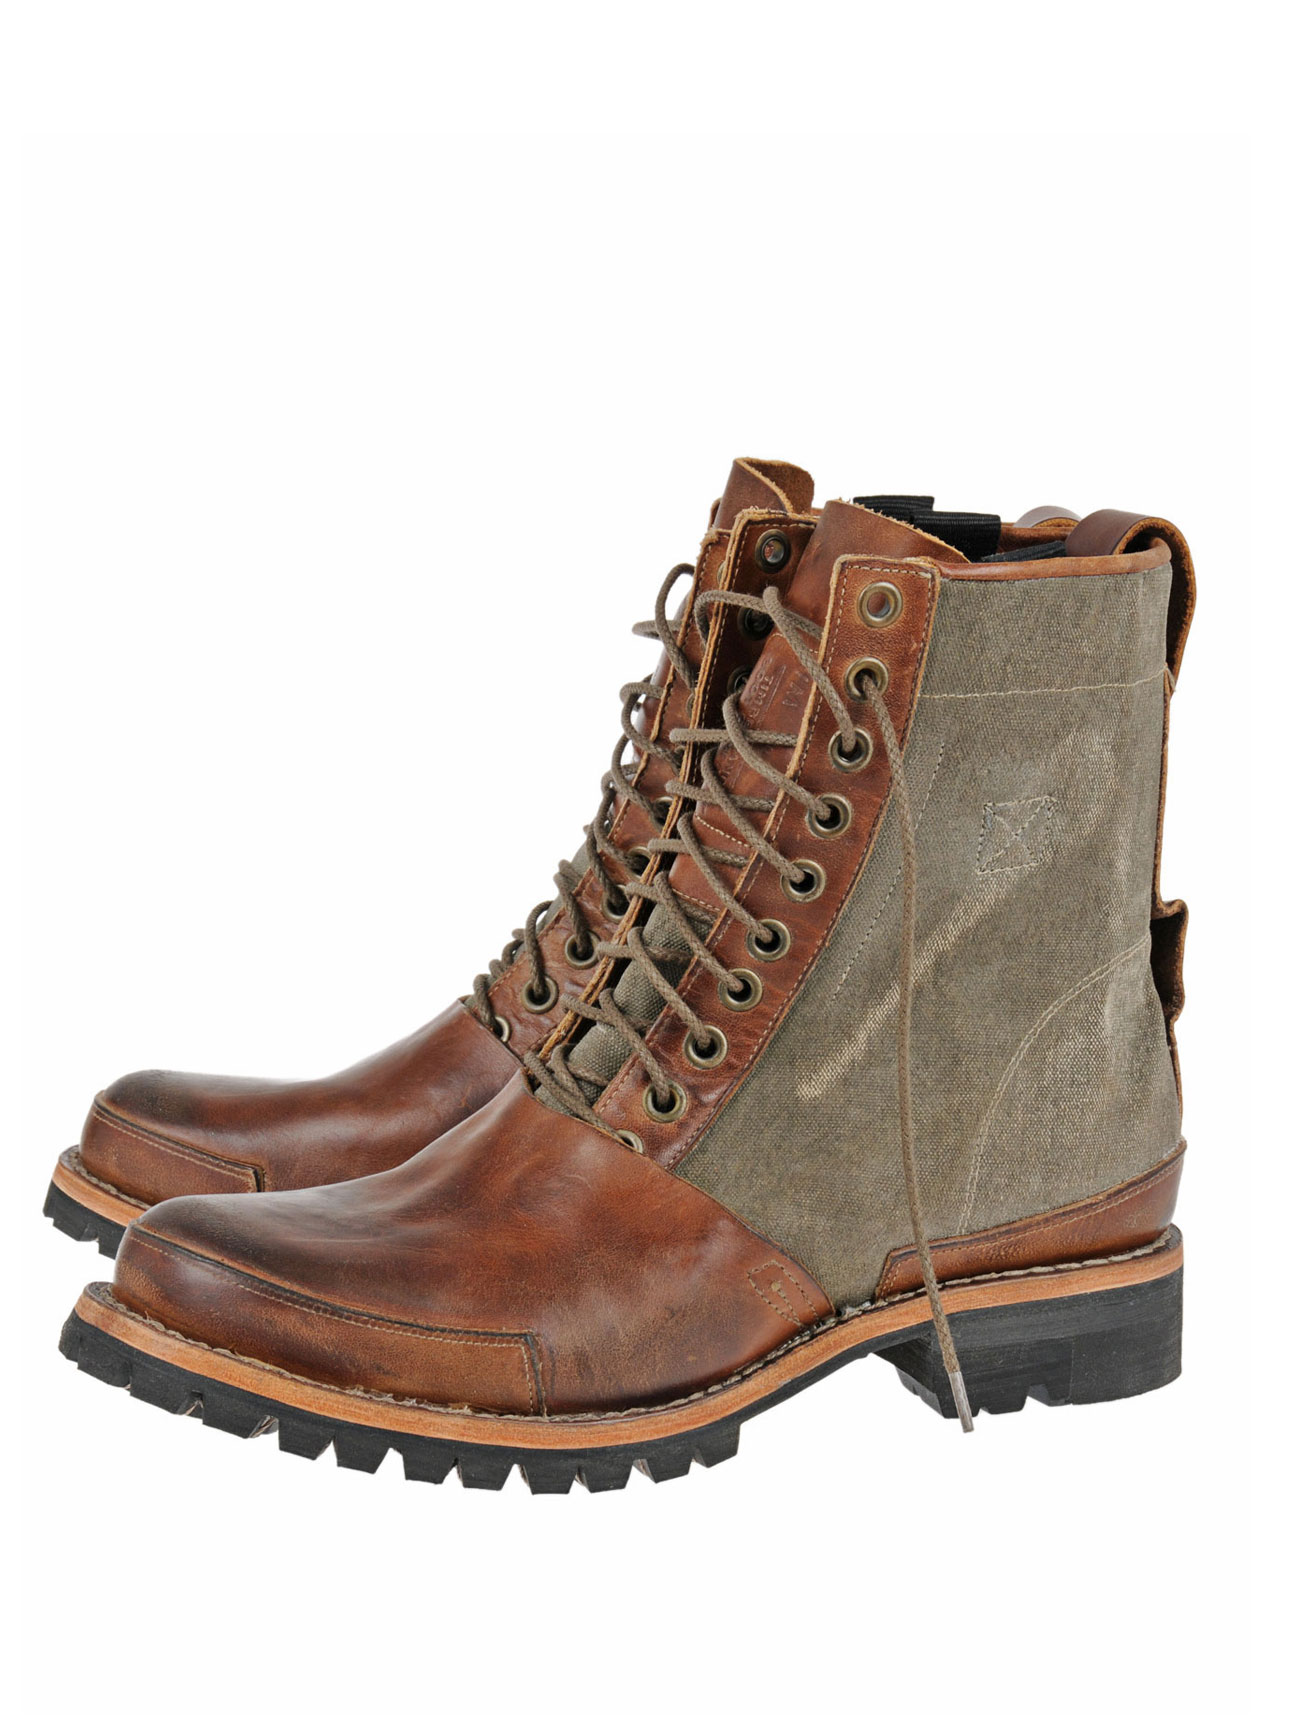 timberland tackhead winter 8 inch boot in brown for men lyst. Black Bedroom Furniture Sets. Home Design Ideas